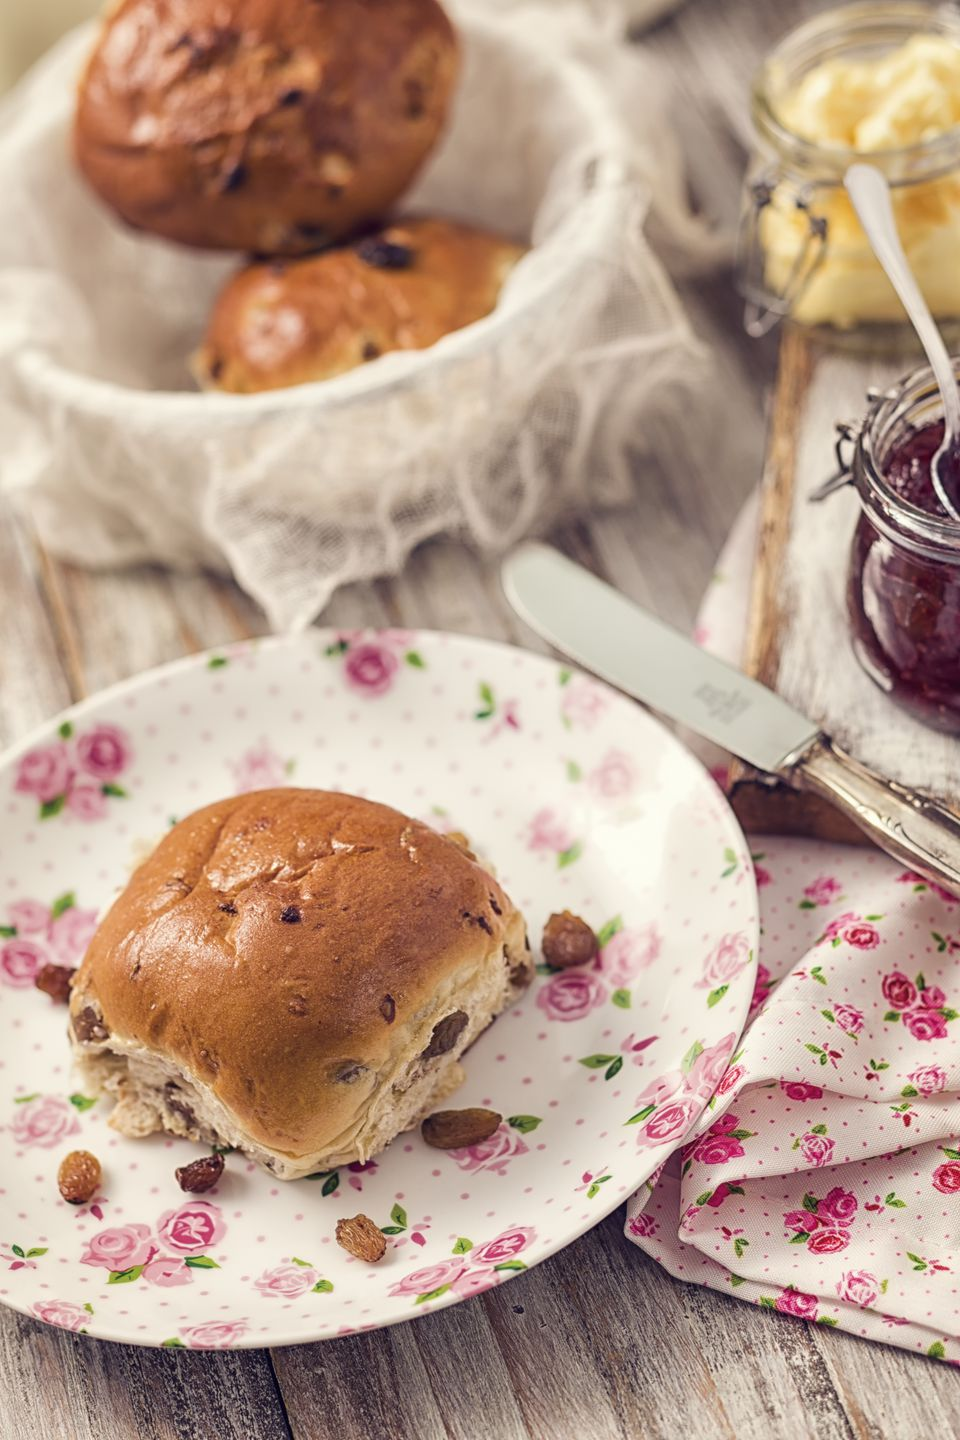 Dutch krentenbollen, butter and jam